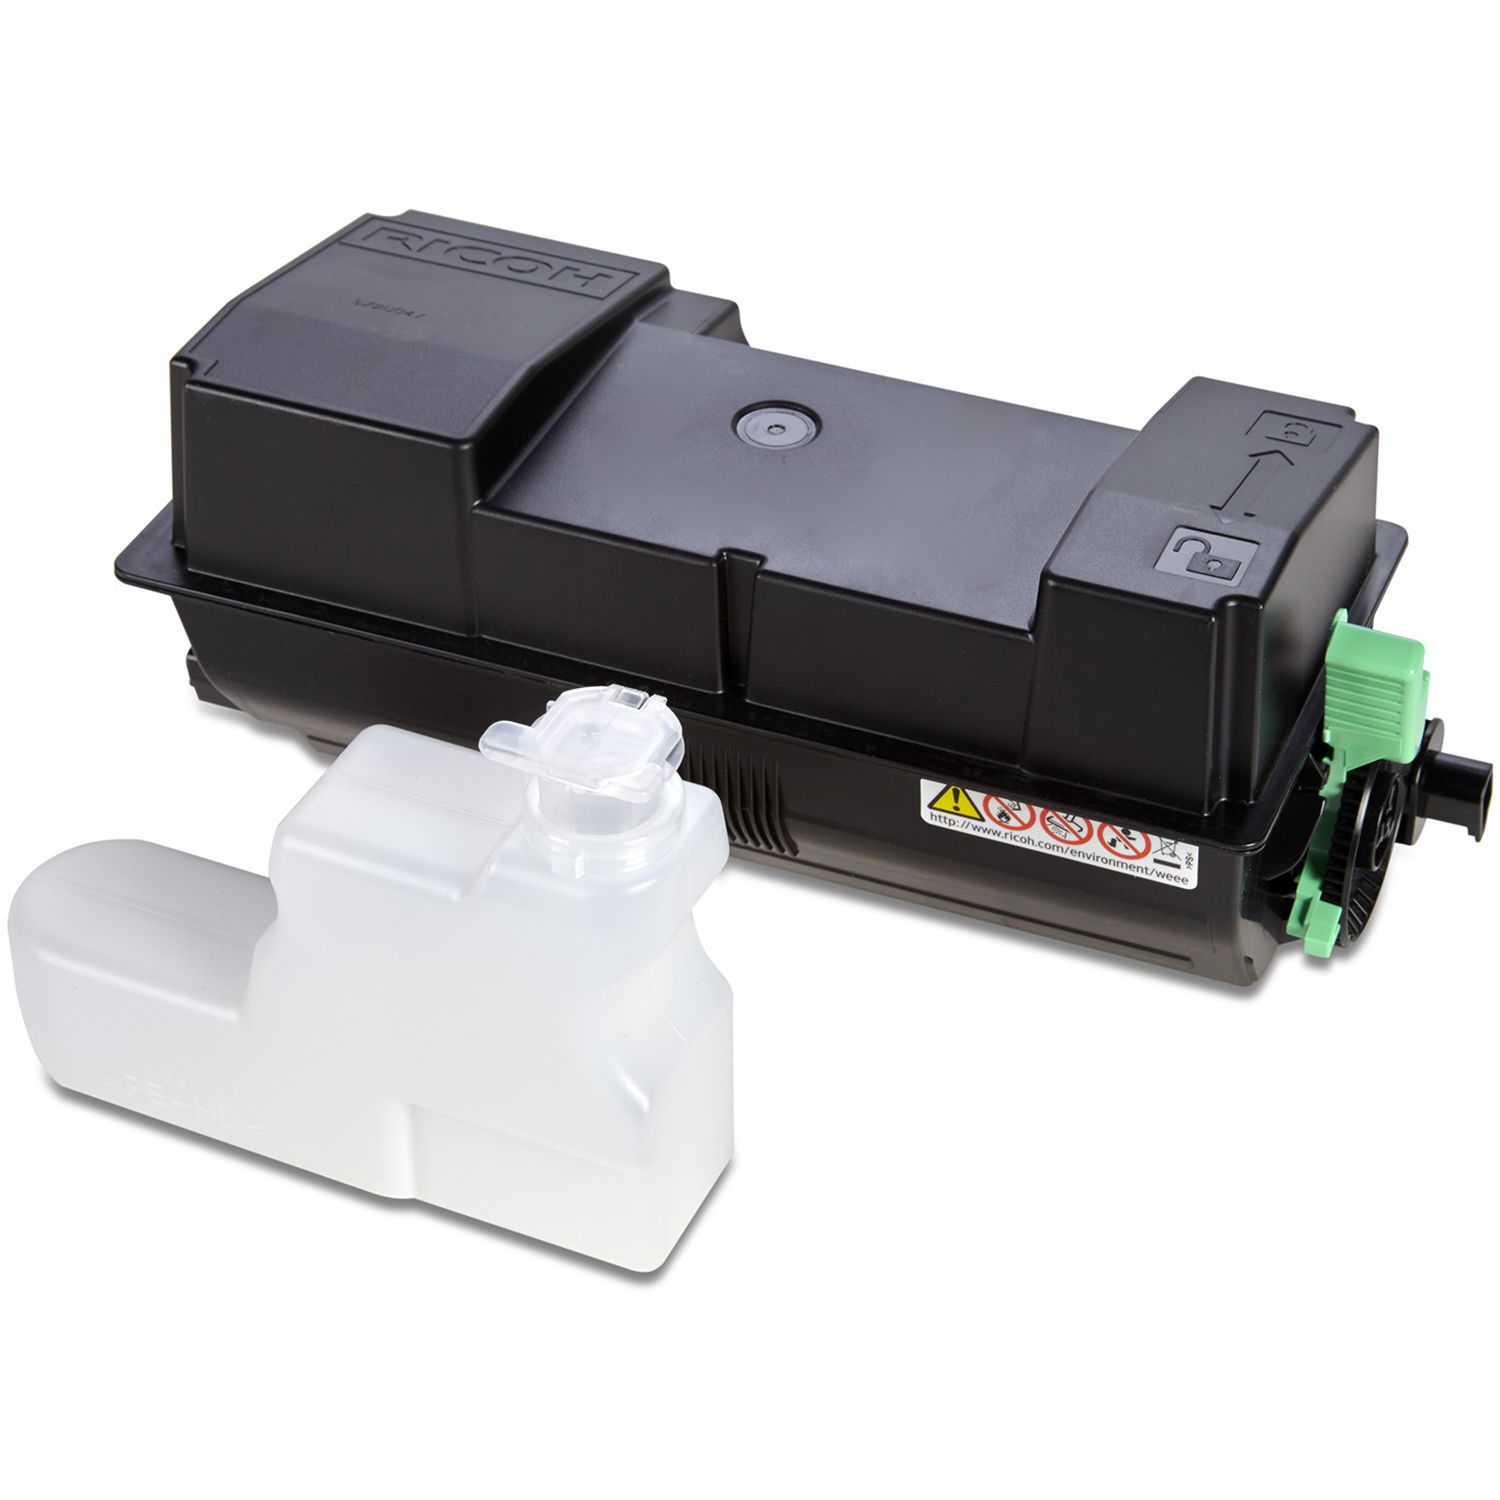 New Product Compatible Toner Cartridge For Ricoh Mp601 Why Choosing Iq Green Cartridge As Partner Top 5 Toner Cartridge M Toner Cartridge Toner Cartridges